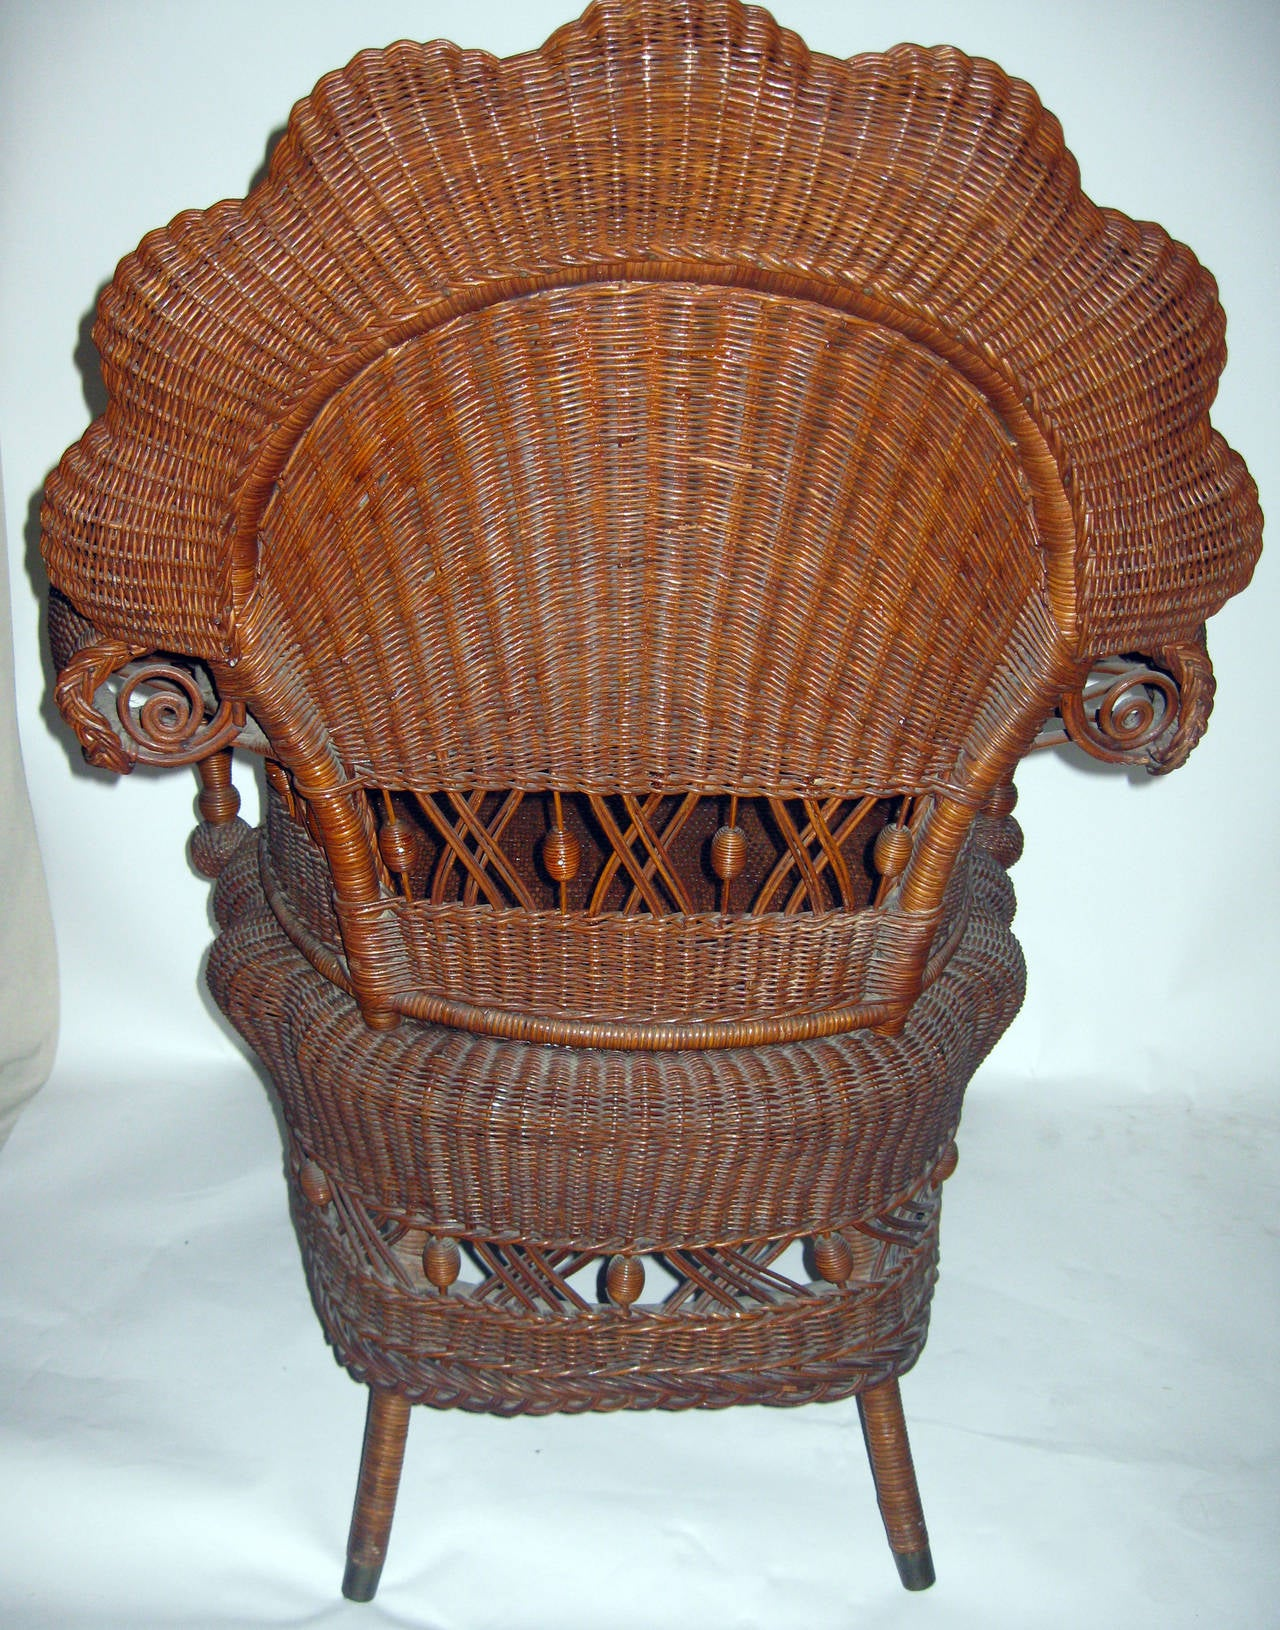 19th century american wicker armchair at 1stdibs for American rattan furniture manufacturer